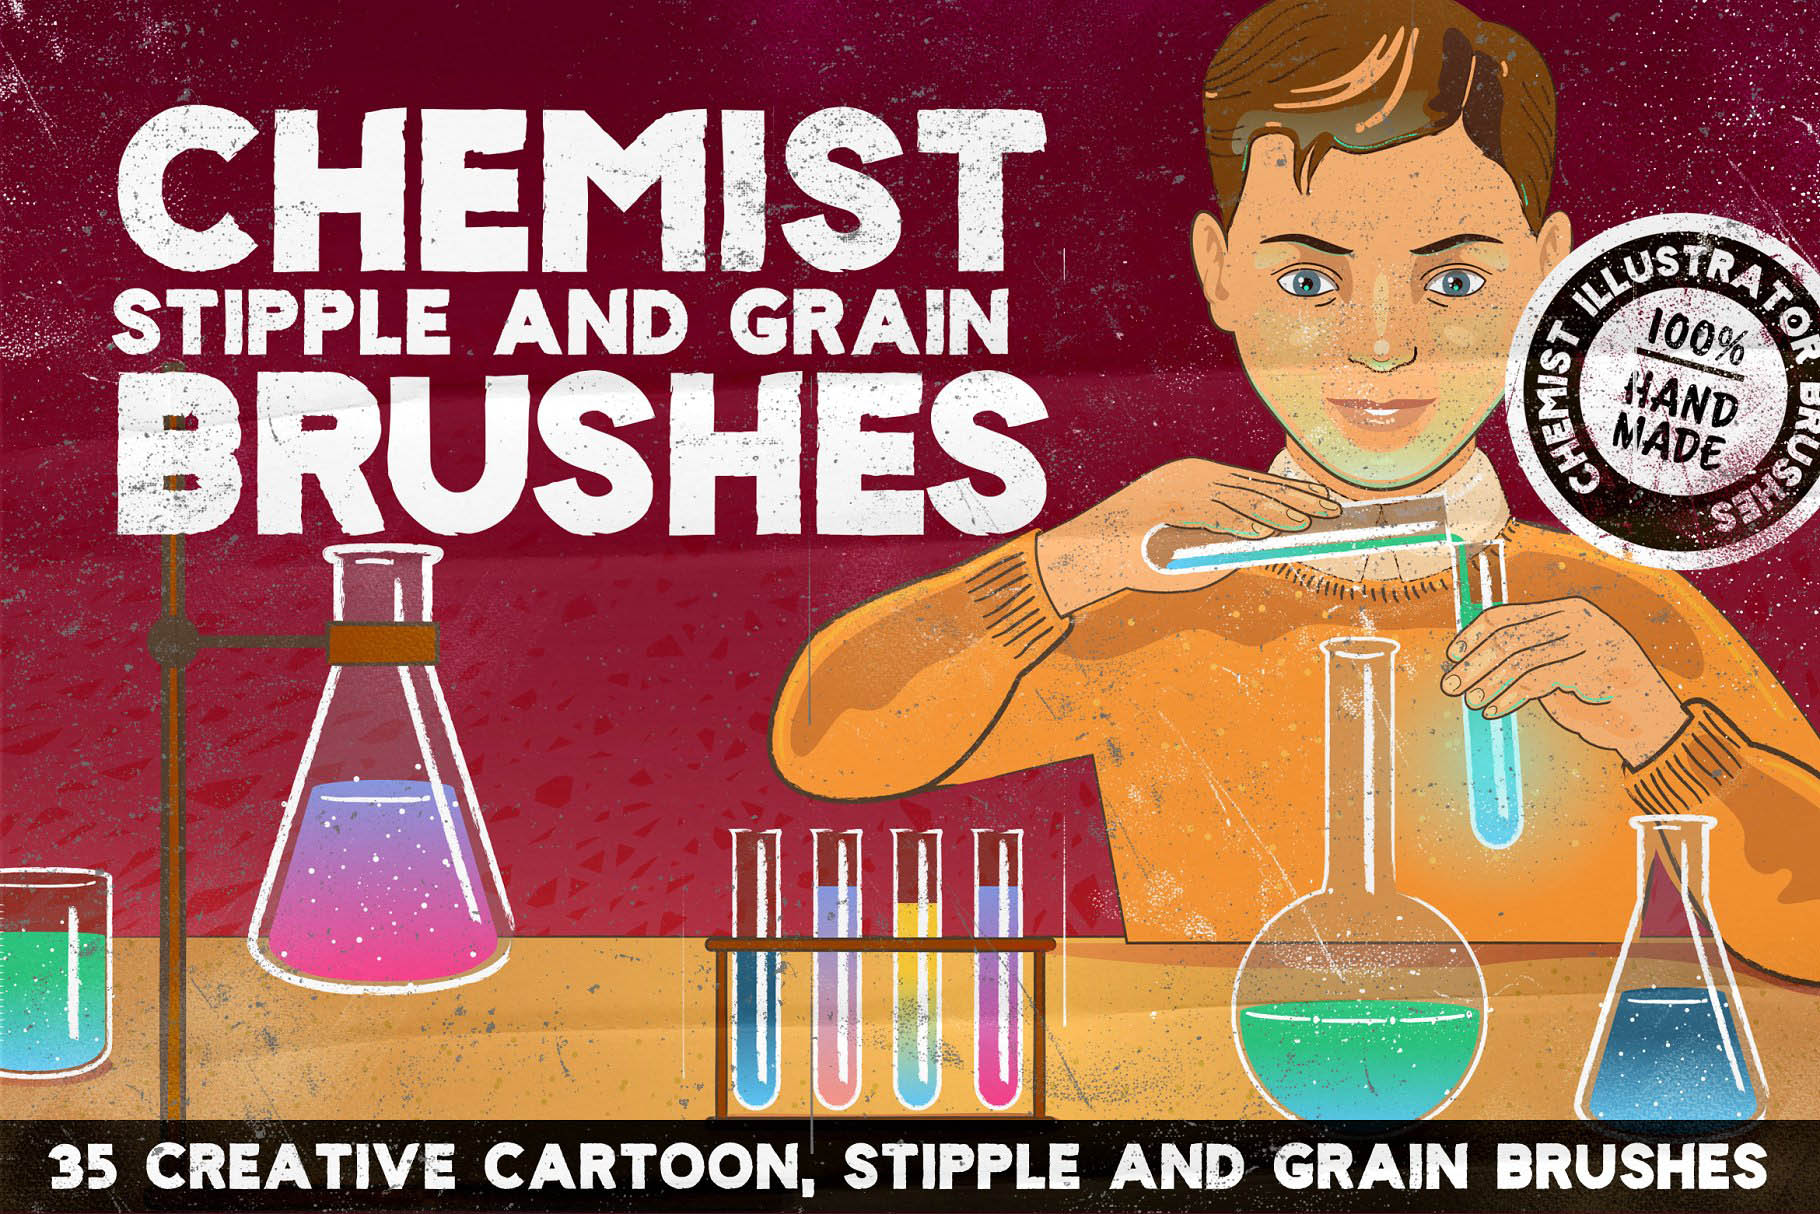 特别的Ai笔刷 CHEMIST Illustrator Brushes